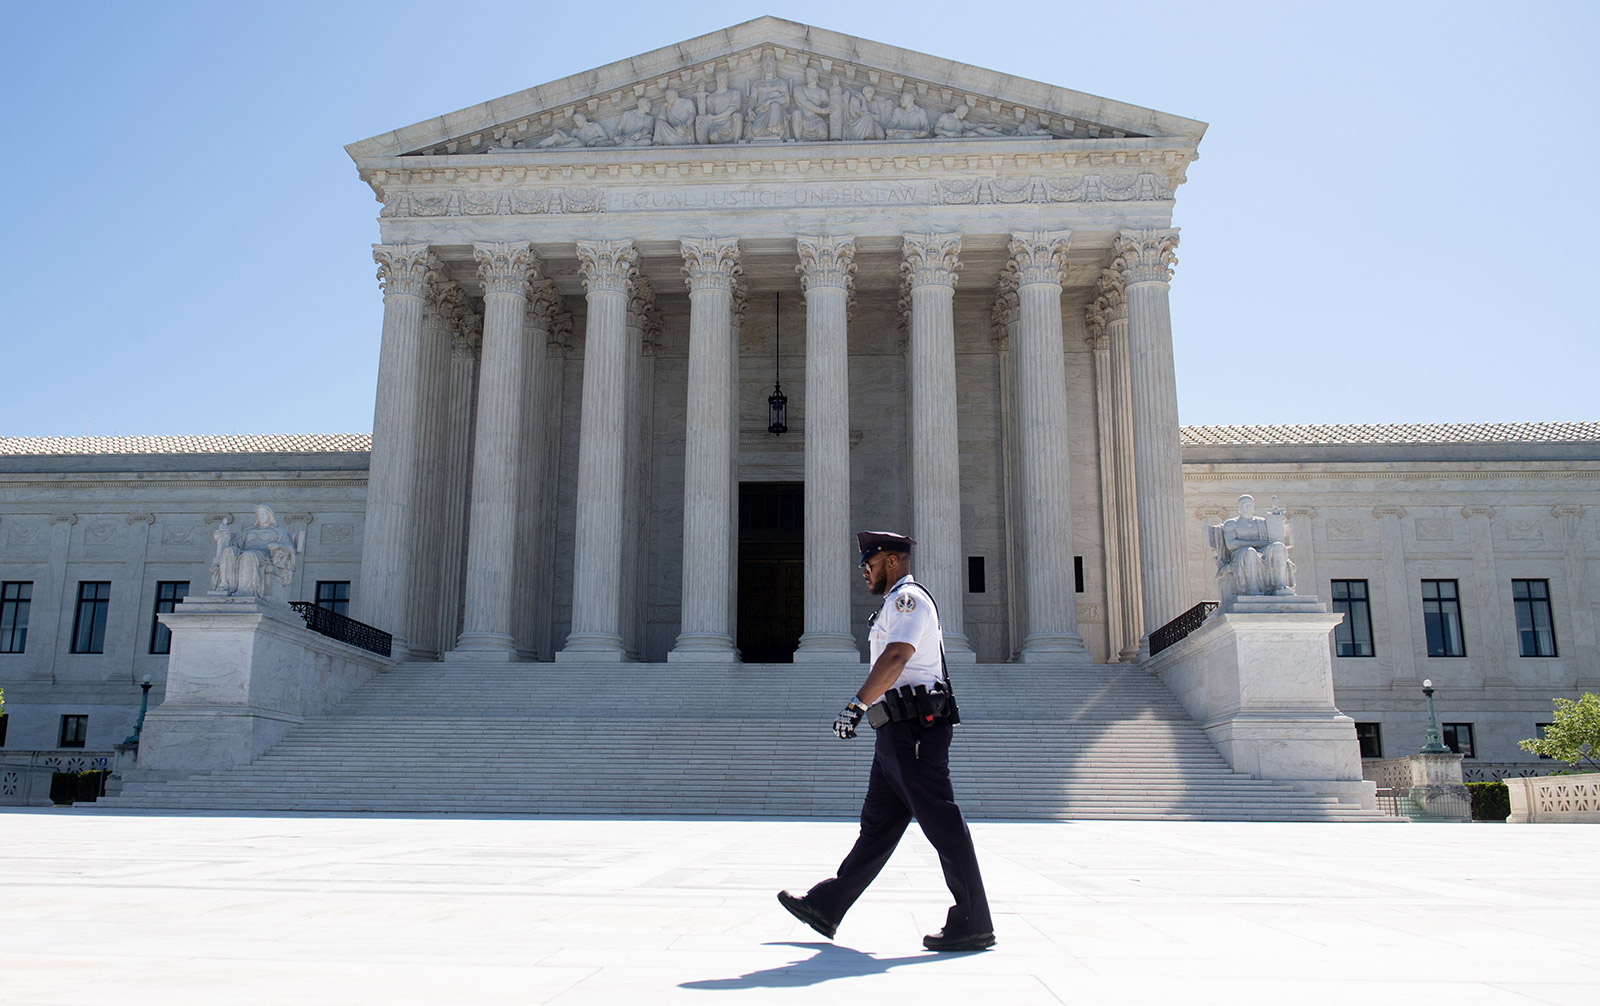 The US Supreme Court is seen in Washington, DC, on May 4, 2020, during the first day of oral arguments held by telephone, a first in the Court's history, as a result of COVID-19, known as coronavirus. (SAUL LOEB/AFP via Getty Images)